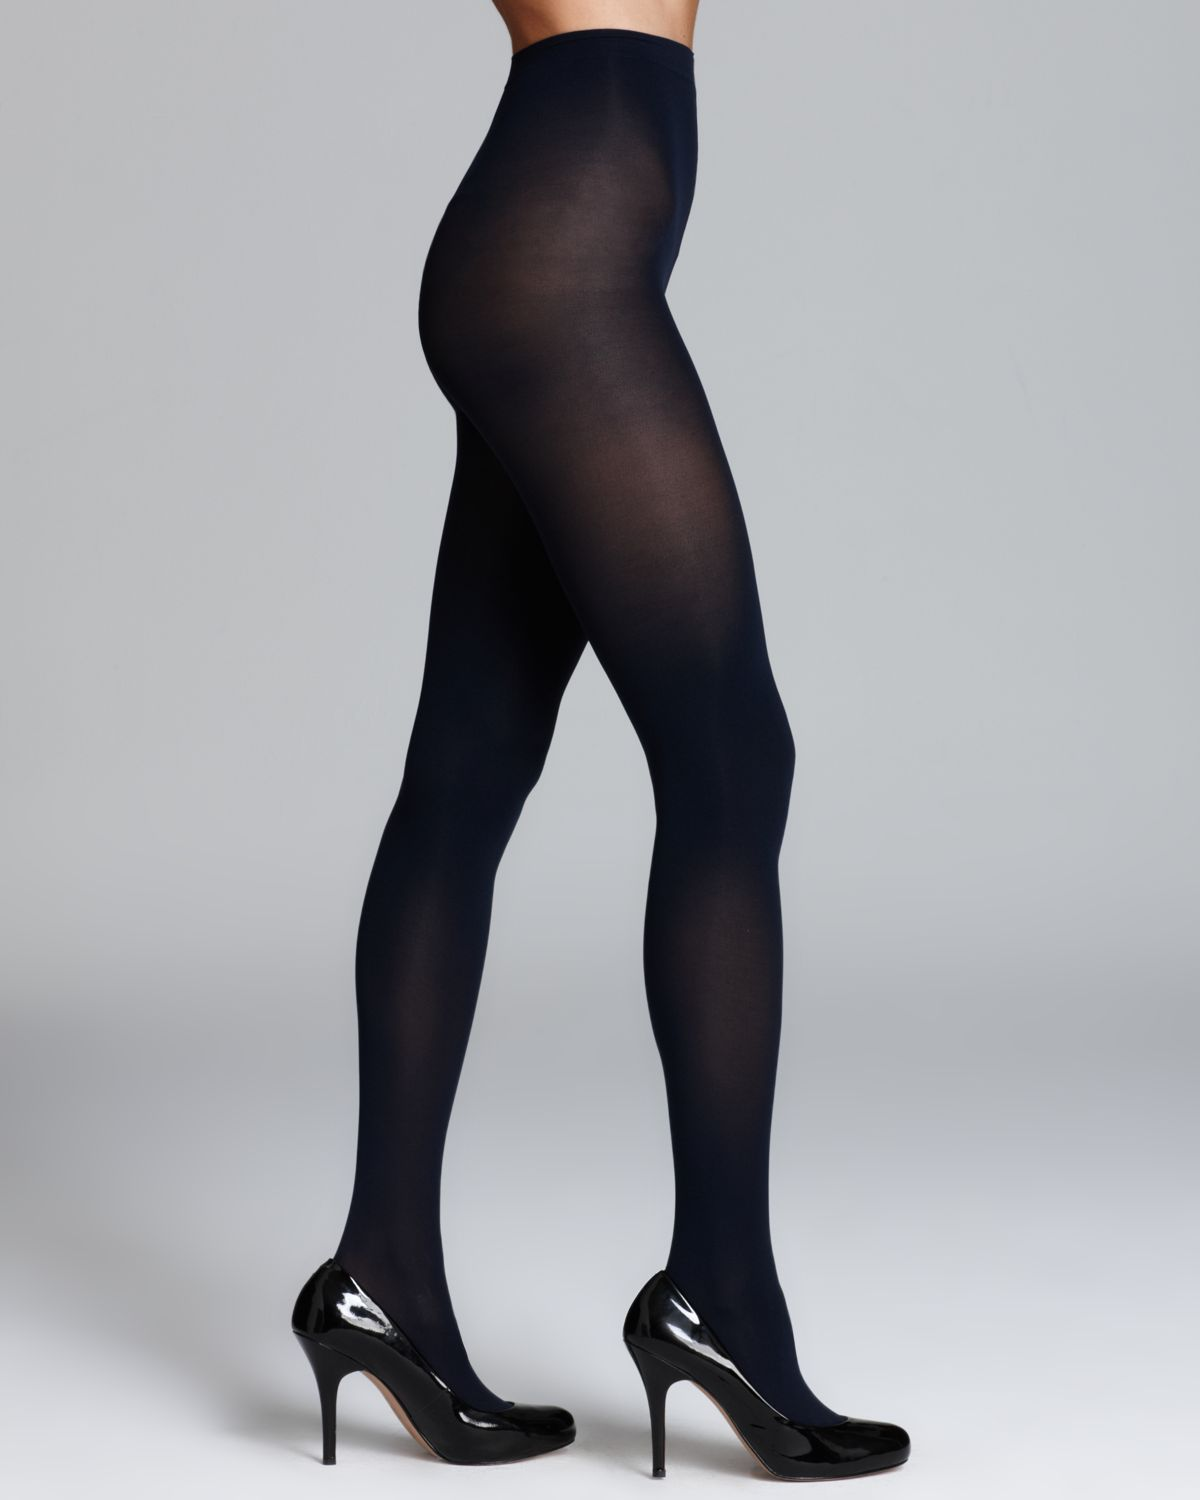 aed5e81b3eced Gallery. Previously sold at: Bloomingdale's · Women's Black Tights